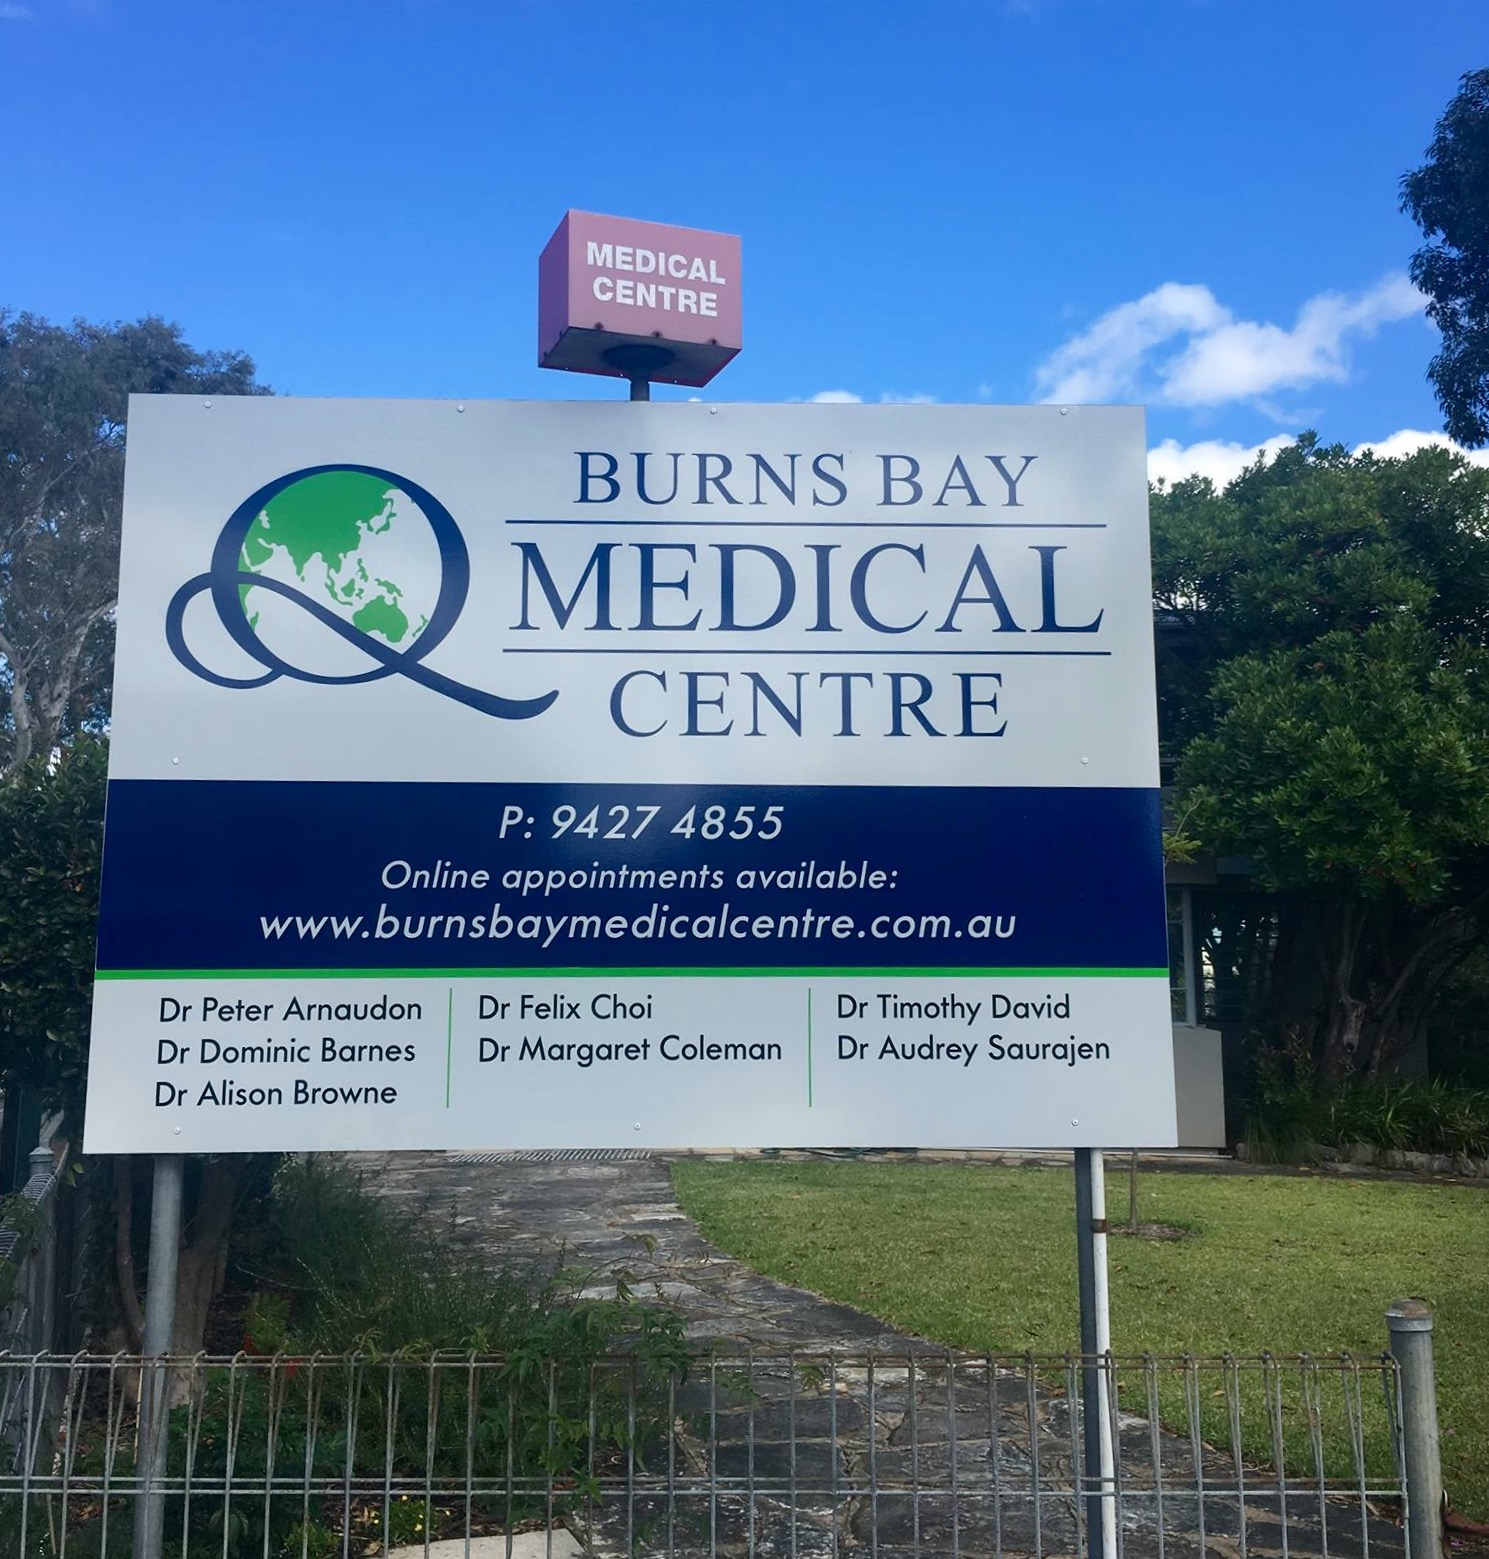 Burns Bay Medical Centre